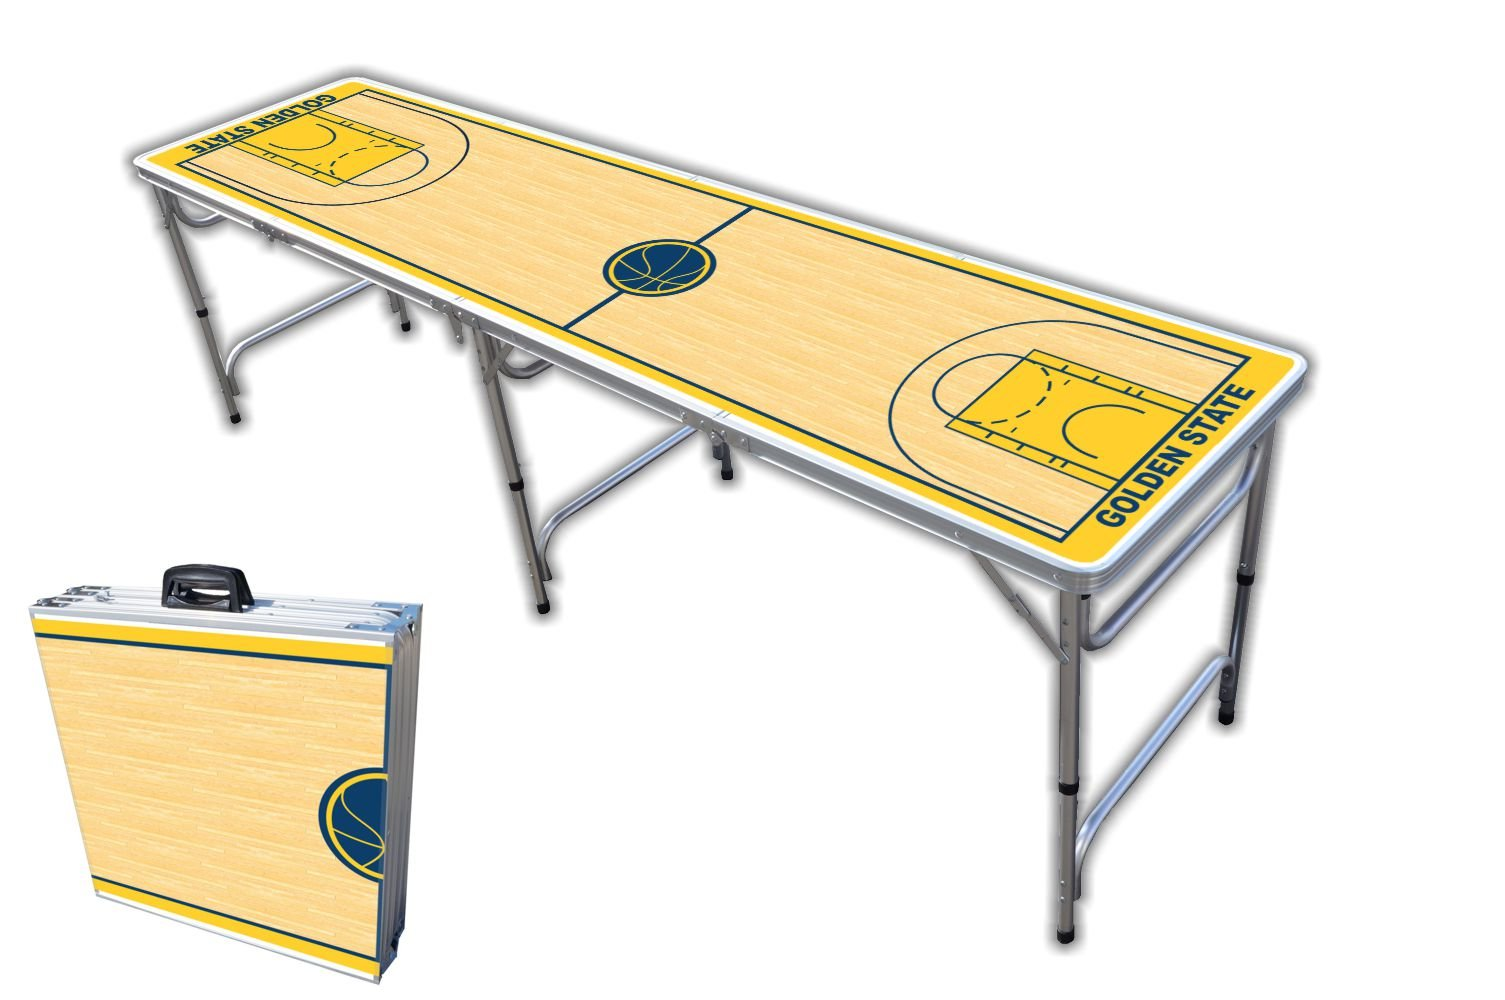 8-Foot Professional Beer Pong Table - Golden State Basketball Court Graphic by PartyPongTables.com